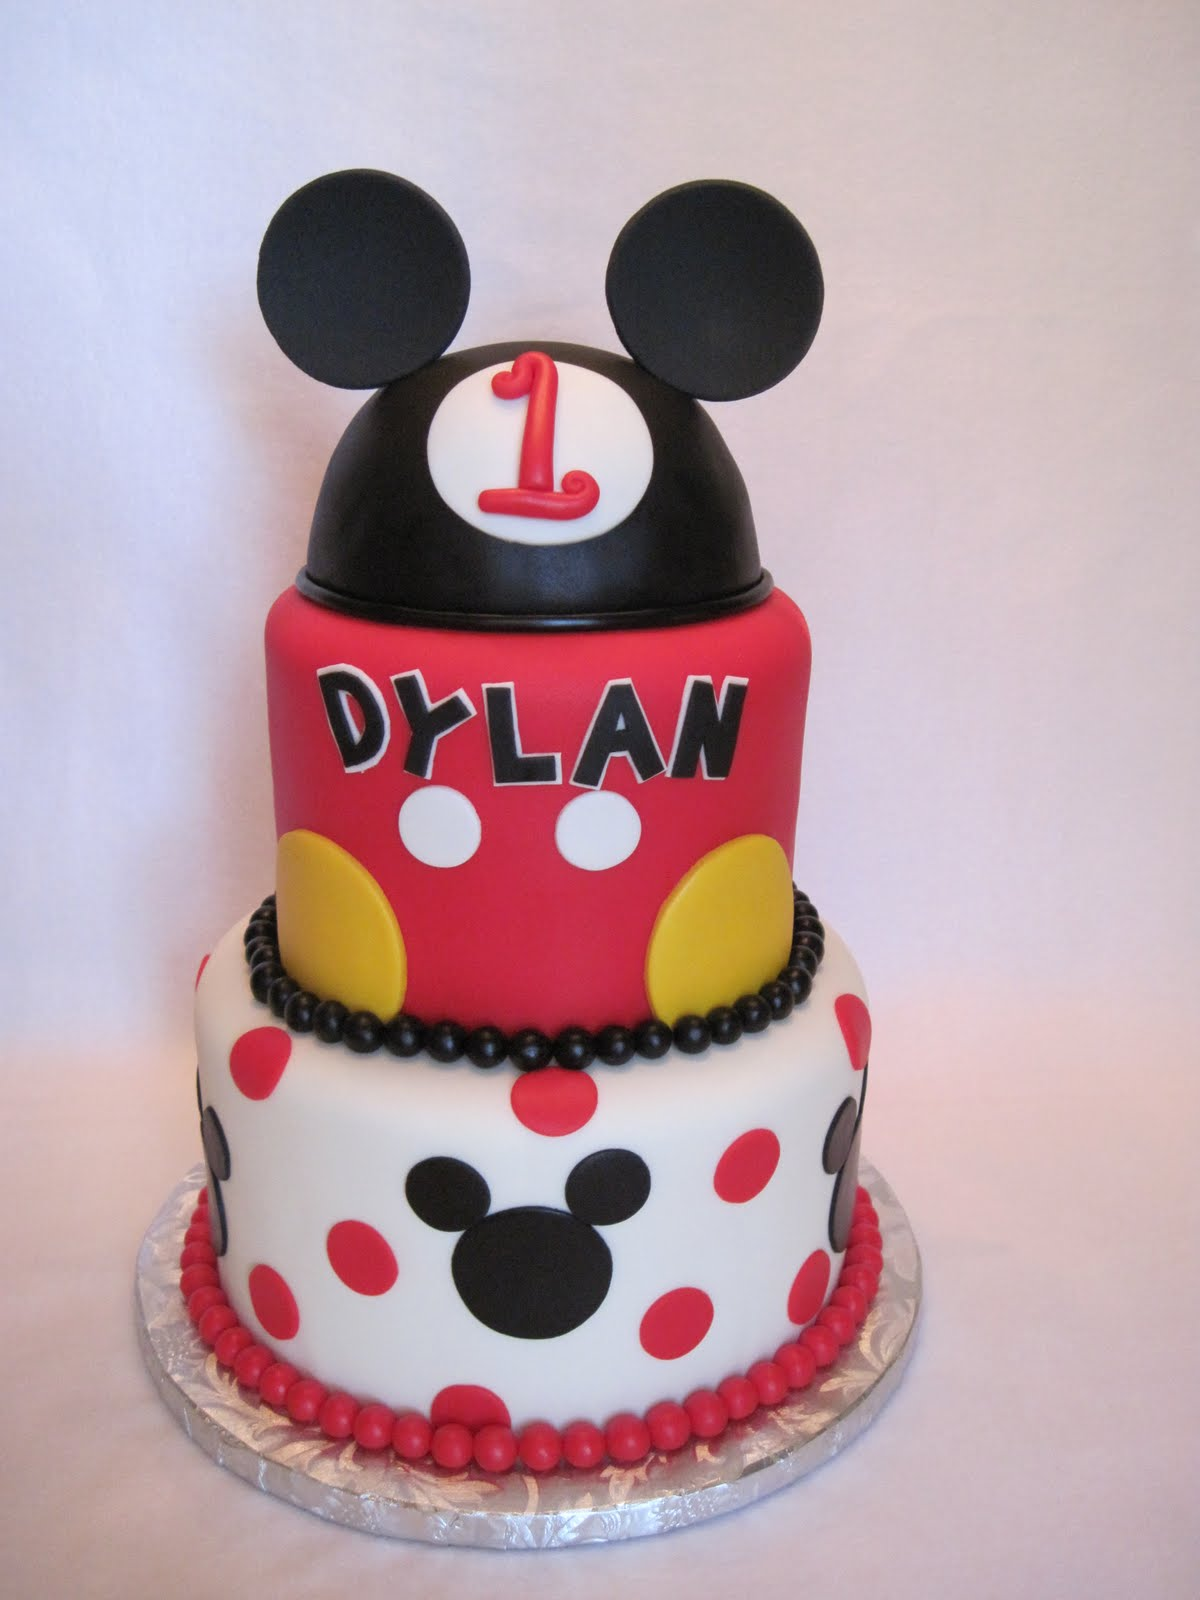 Mickey Mouse Images For Cake : Heather s Cakes and Confections: Mickey Mouse